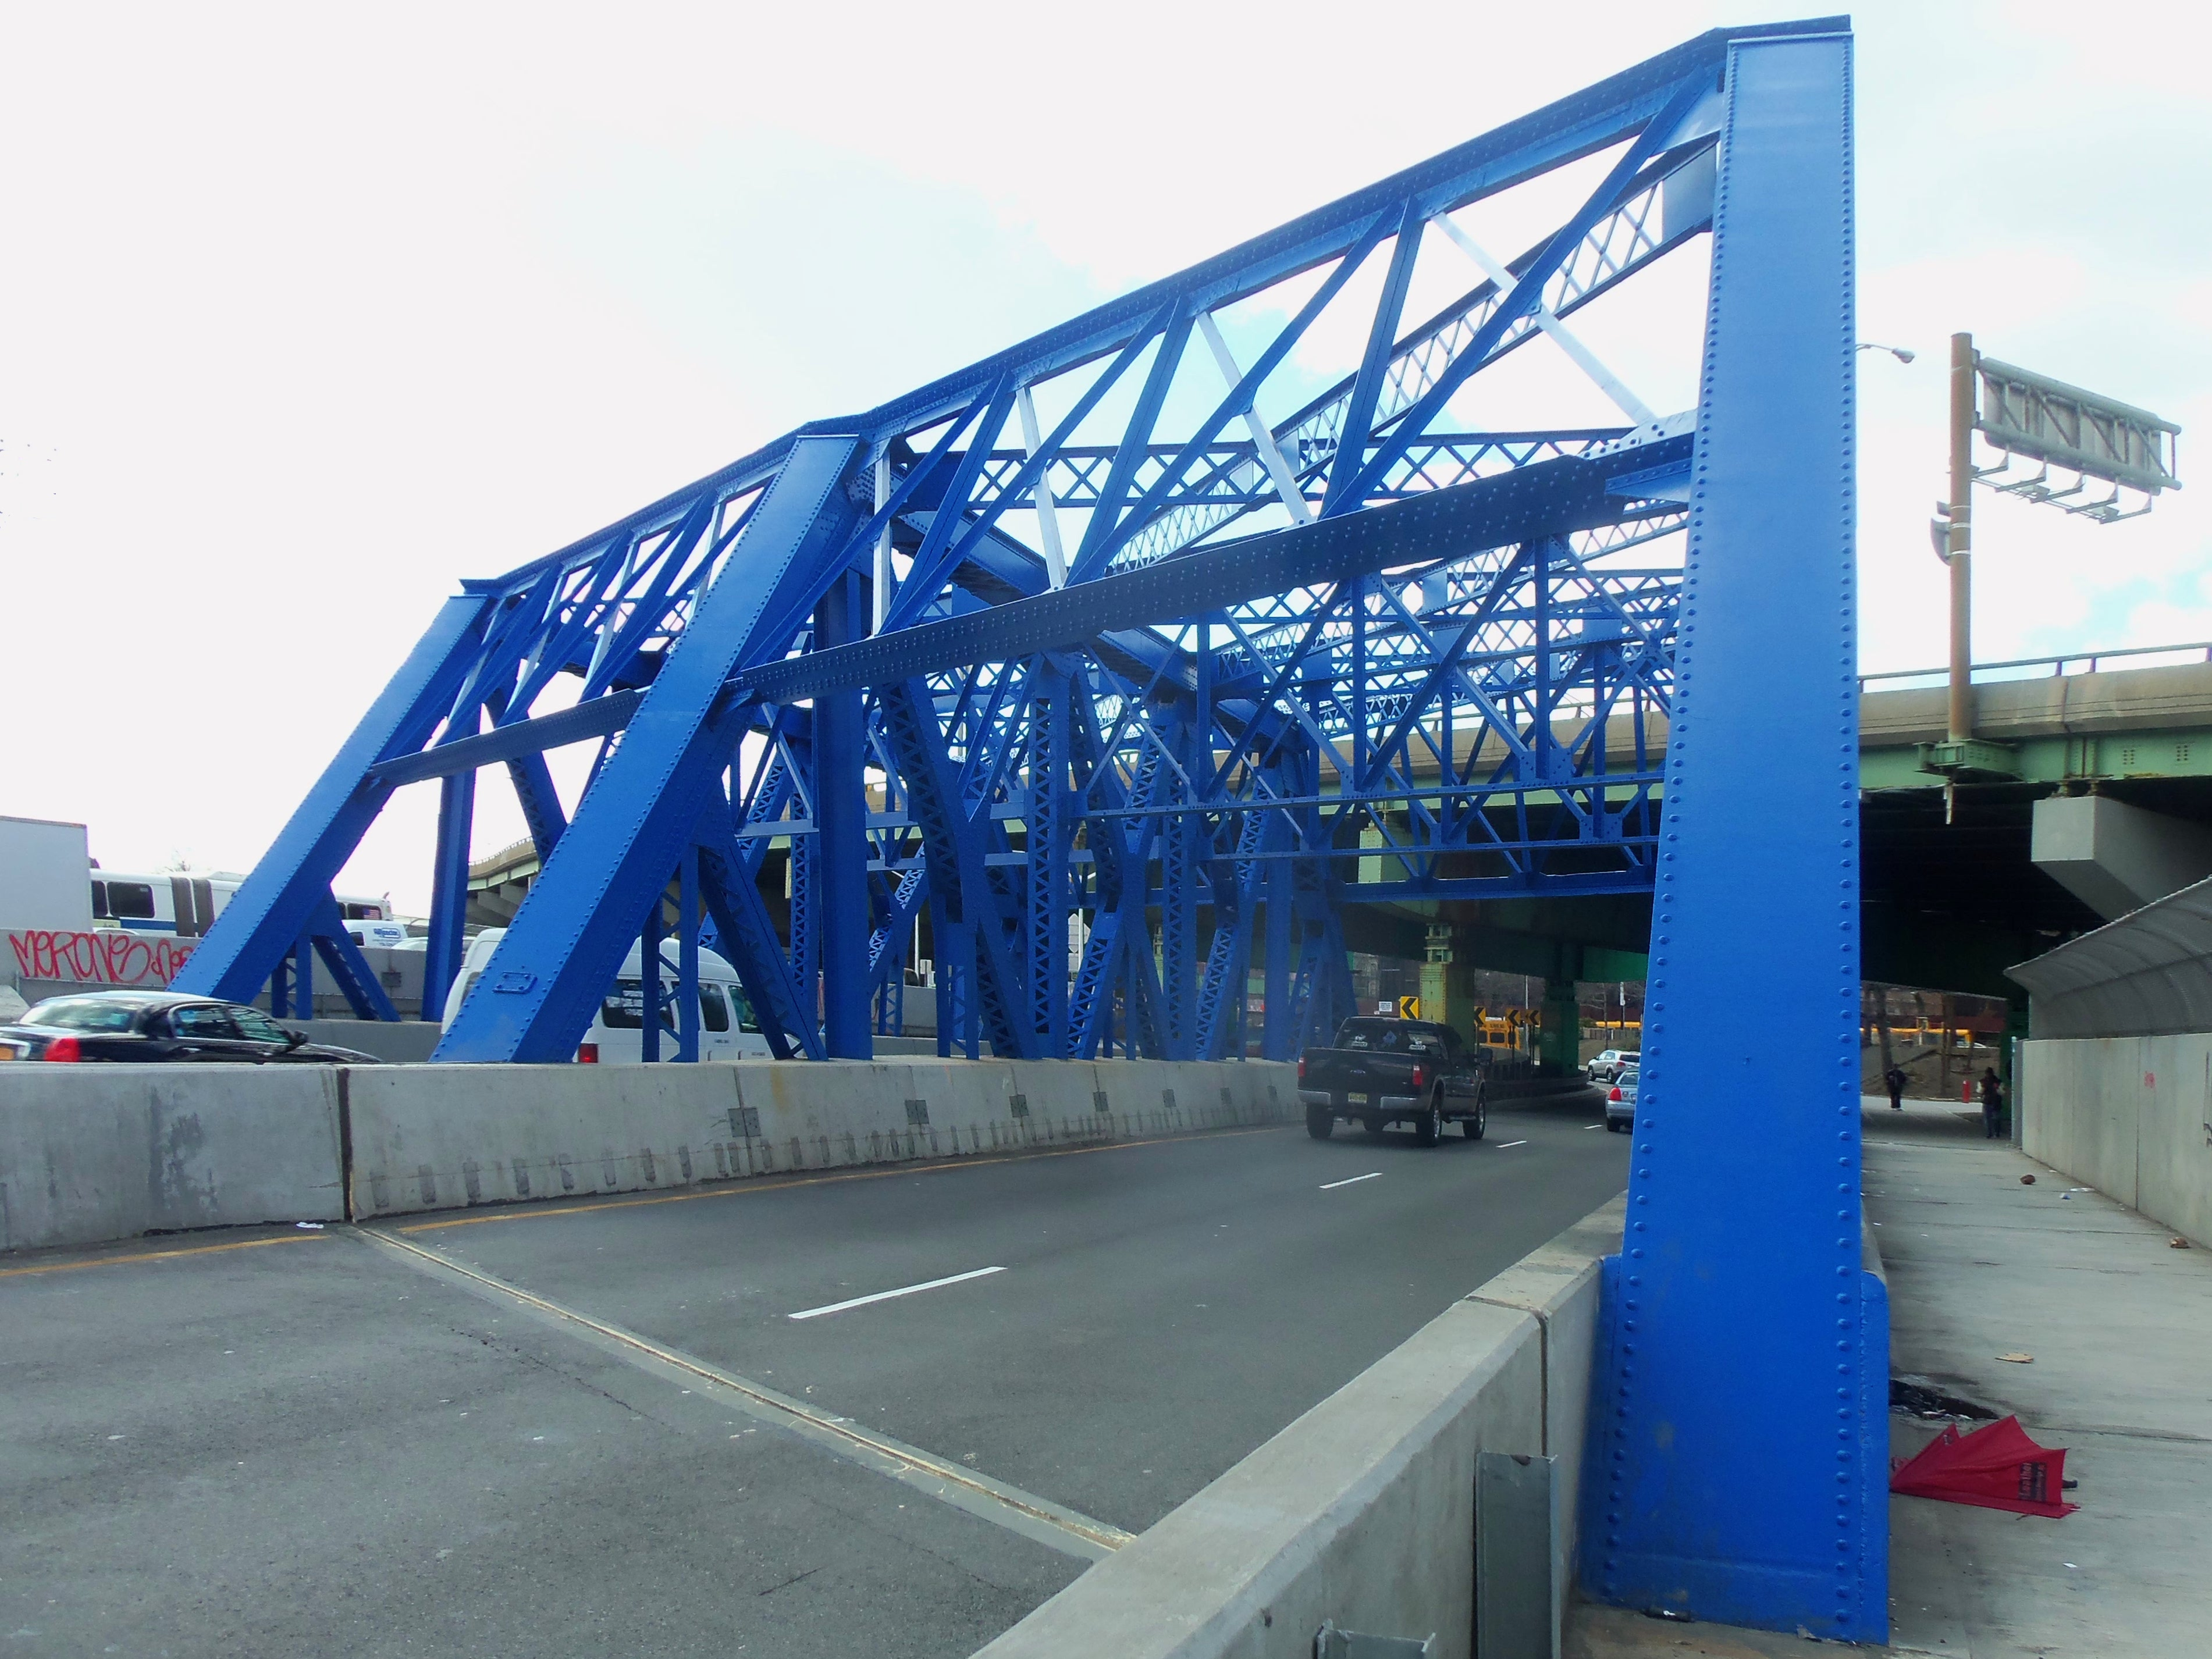 Federal Blue bridge over Bruckner Blvd.